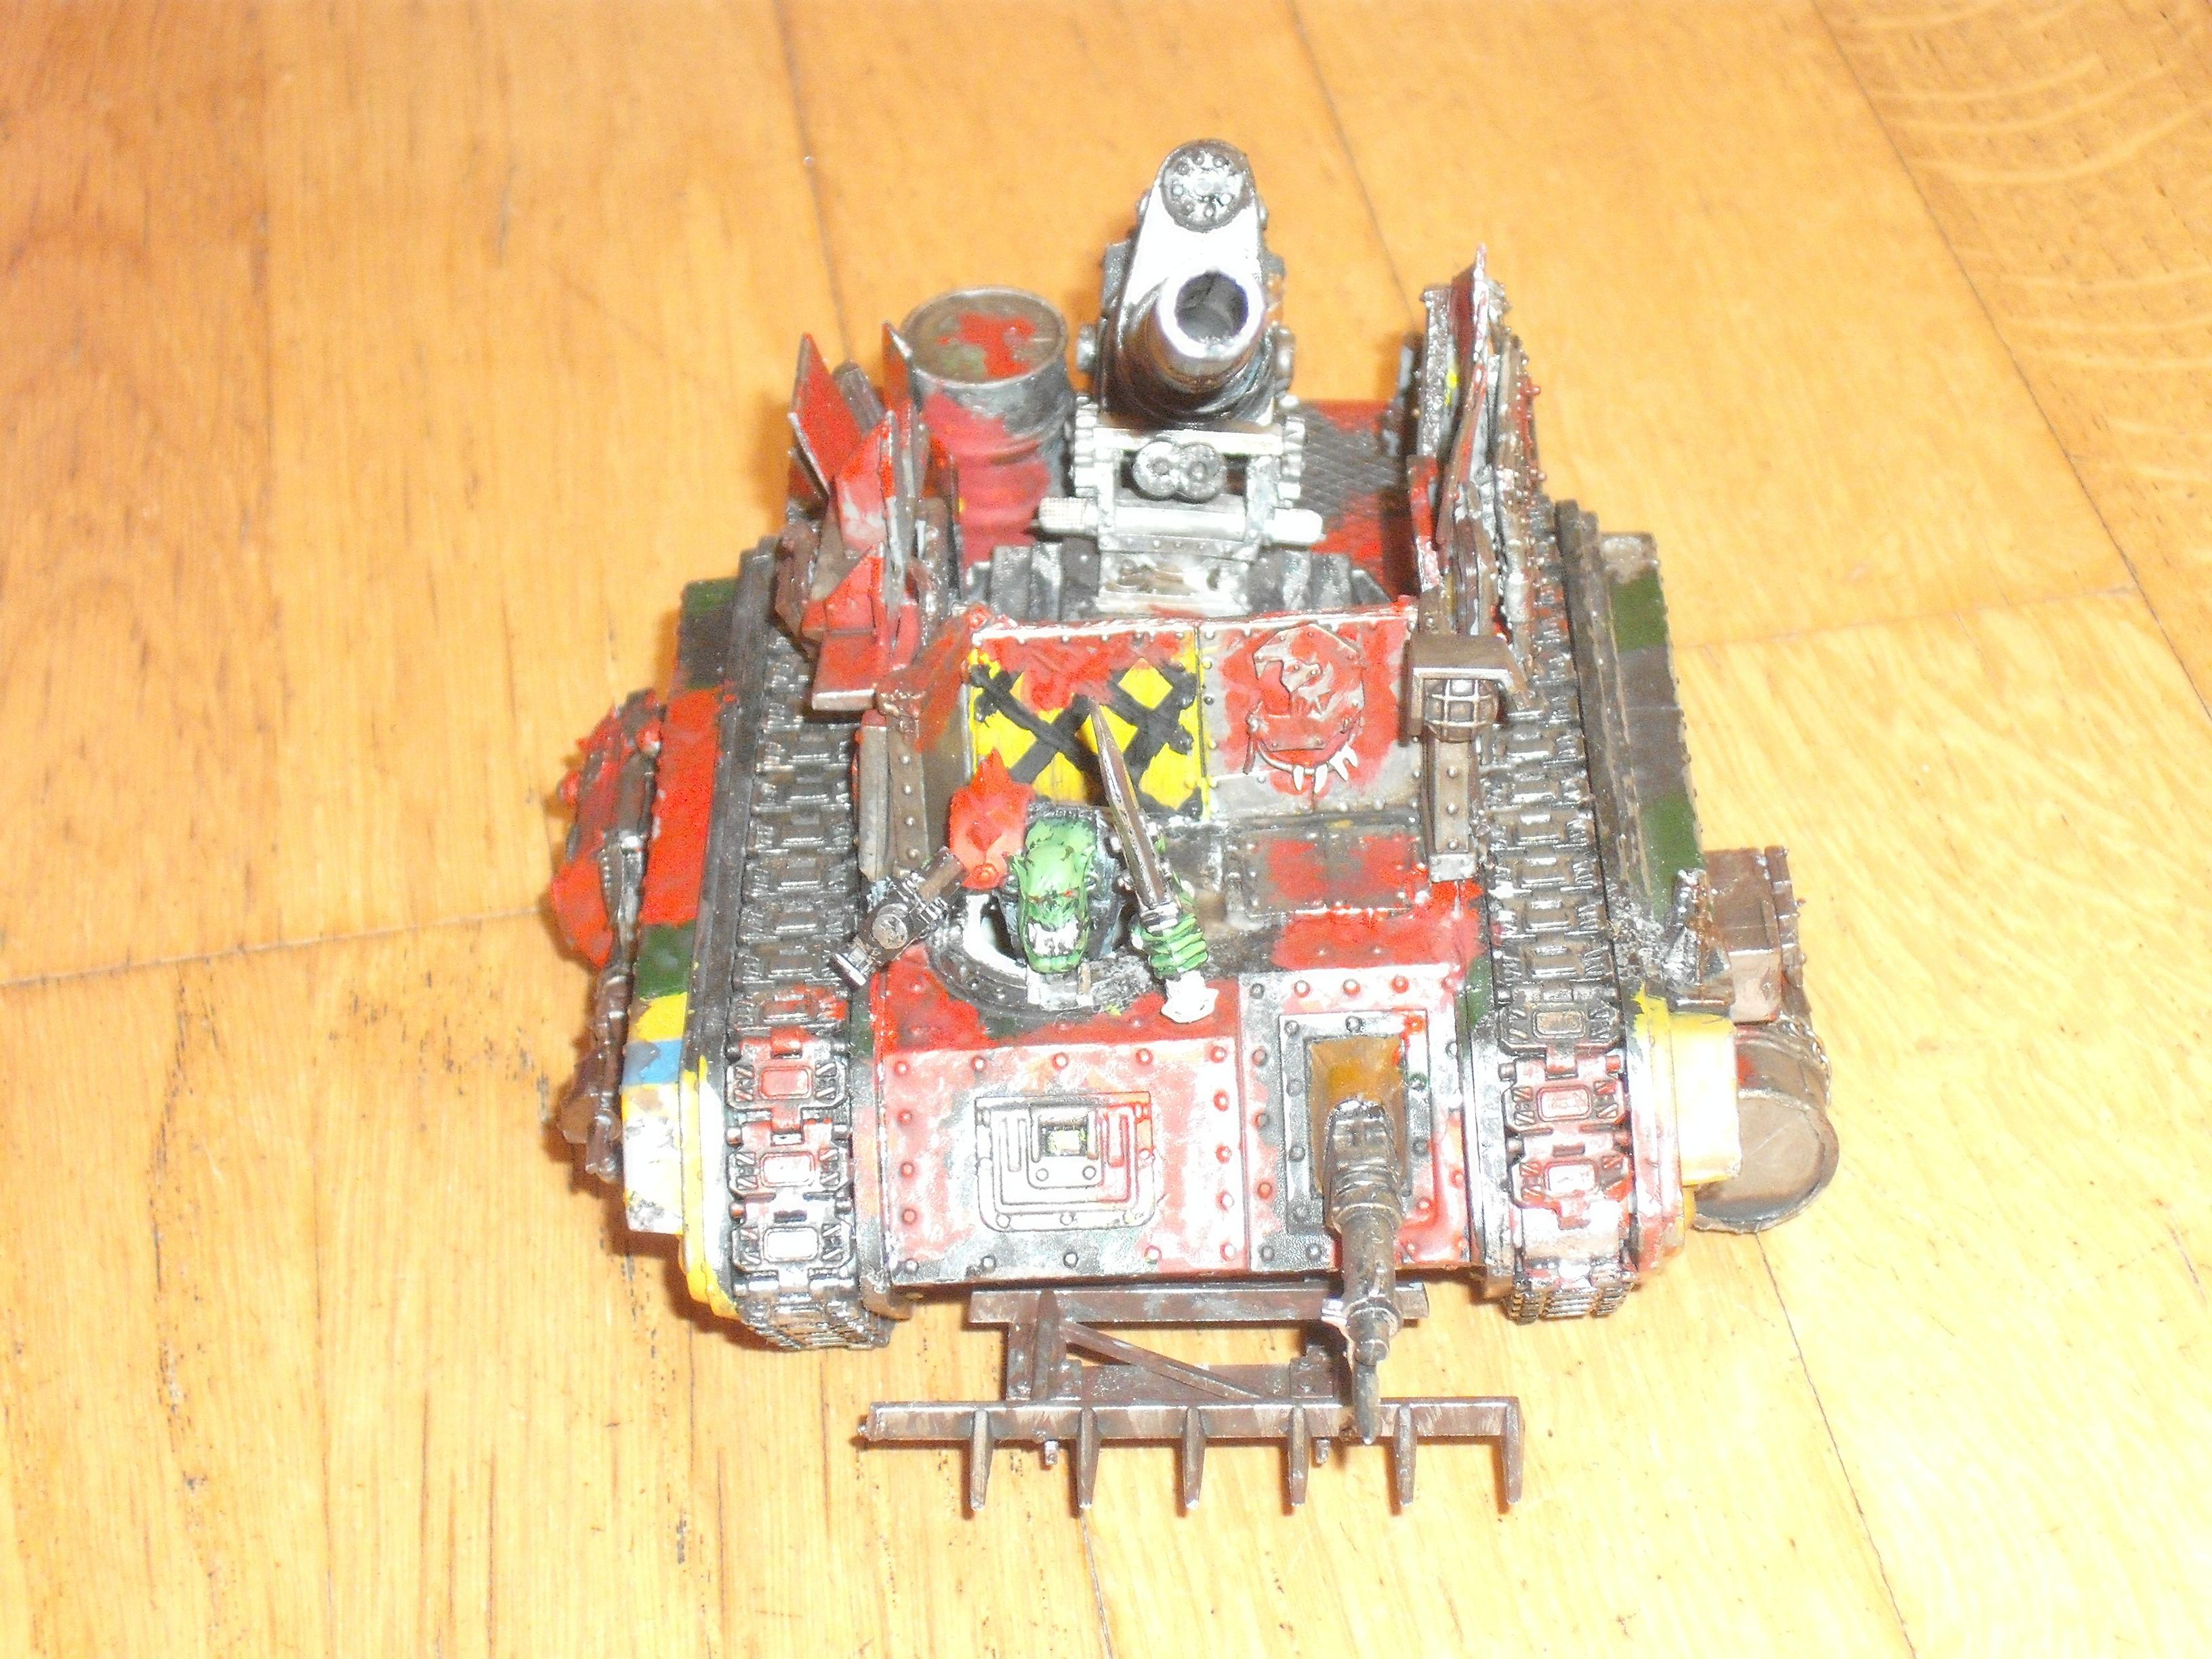 Ork looted vehicle of some description